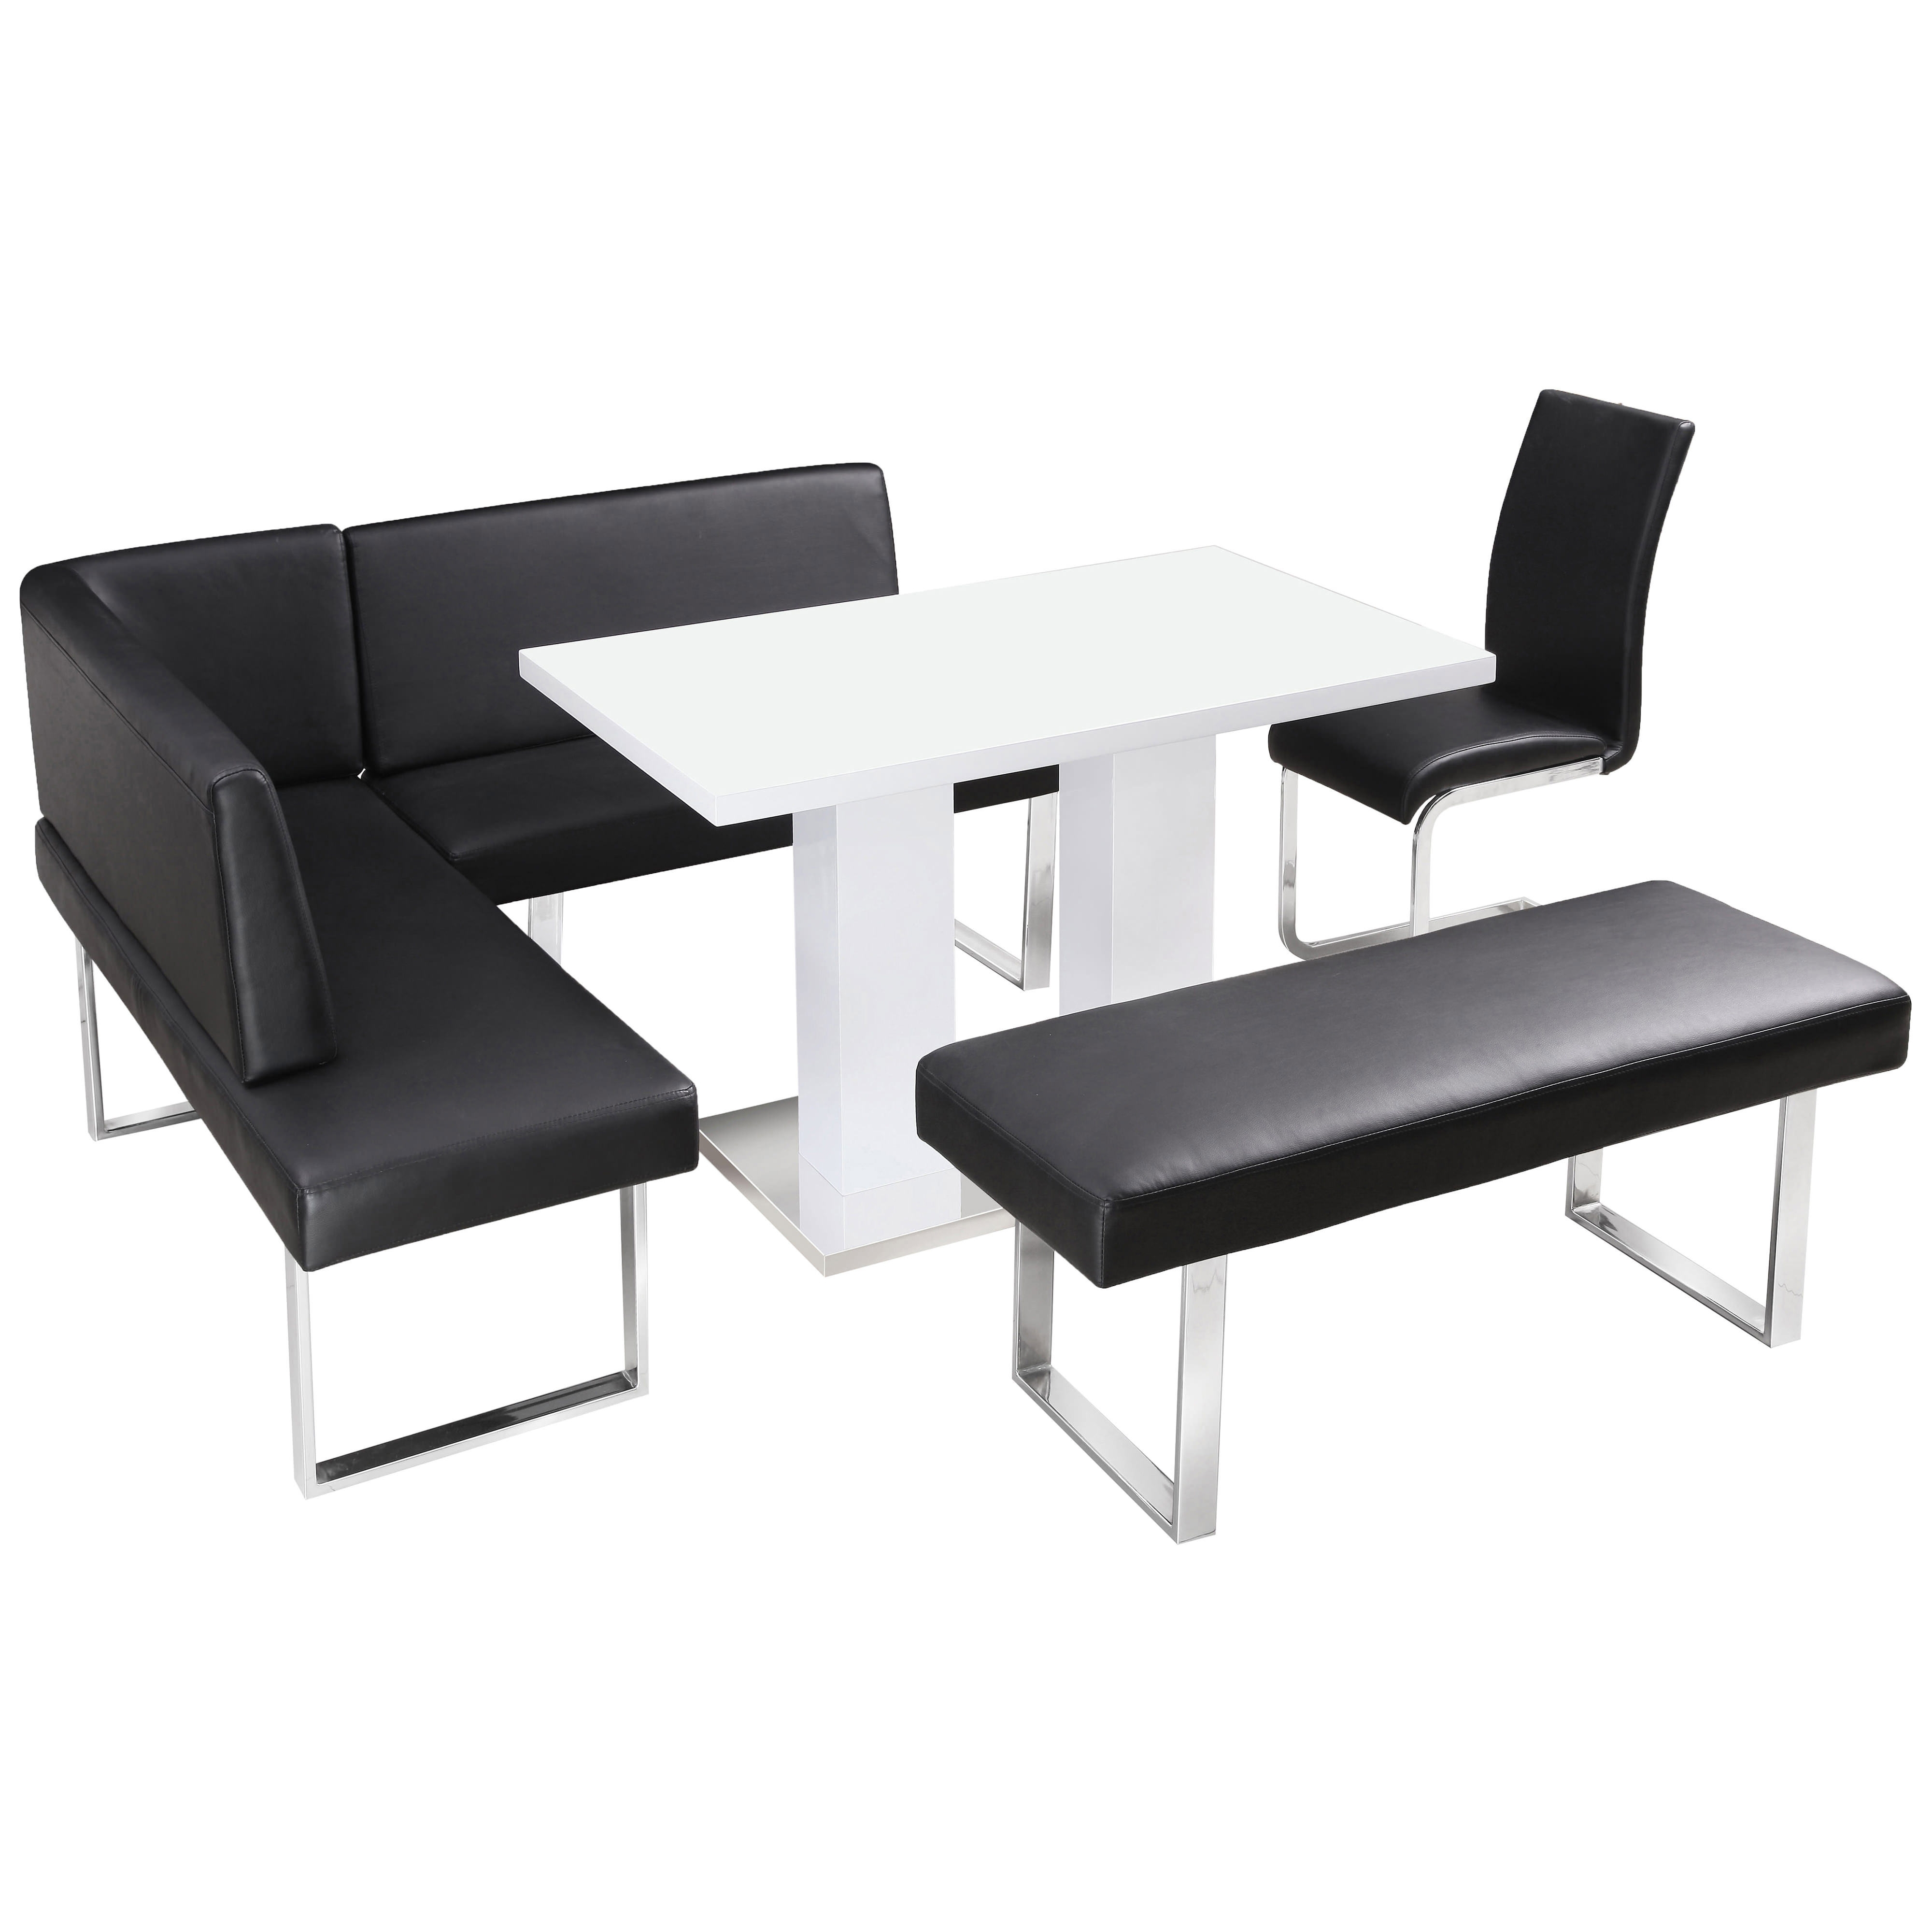 Black High Gloss Dining Tables And Chairs Throughout 2018 High Gloss Dining Table And Chair Set With Corner Bench & 1 Seat (View 16 of 25)